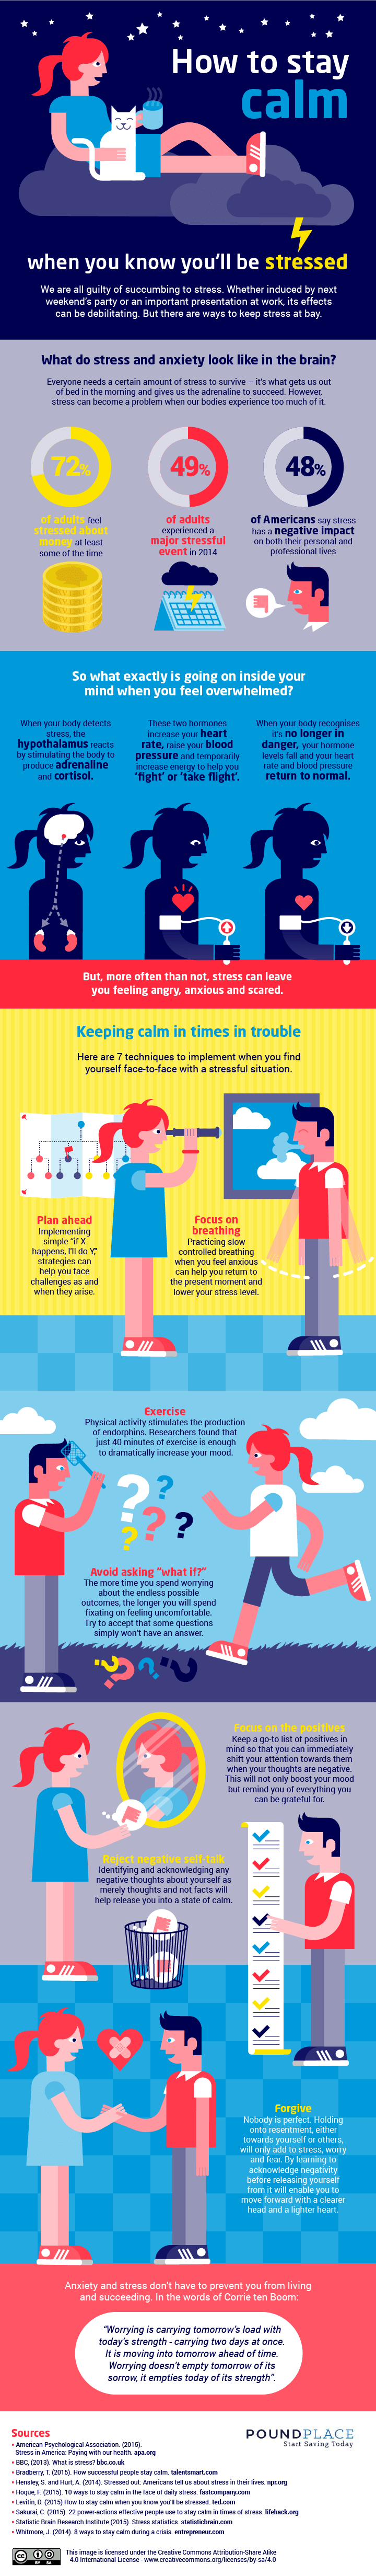 How To Stay Calm When You Know You'll Be Stressed Infographic